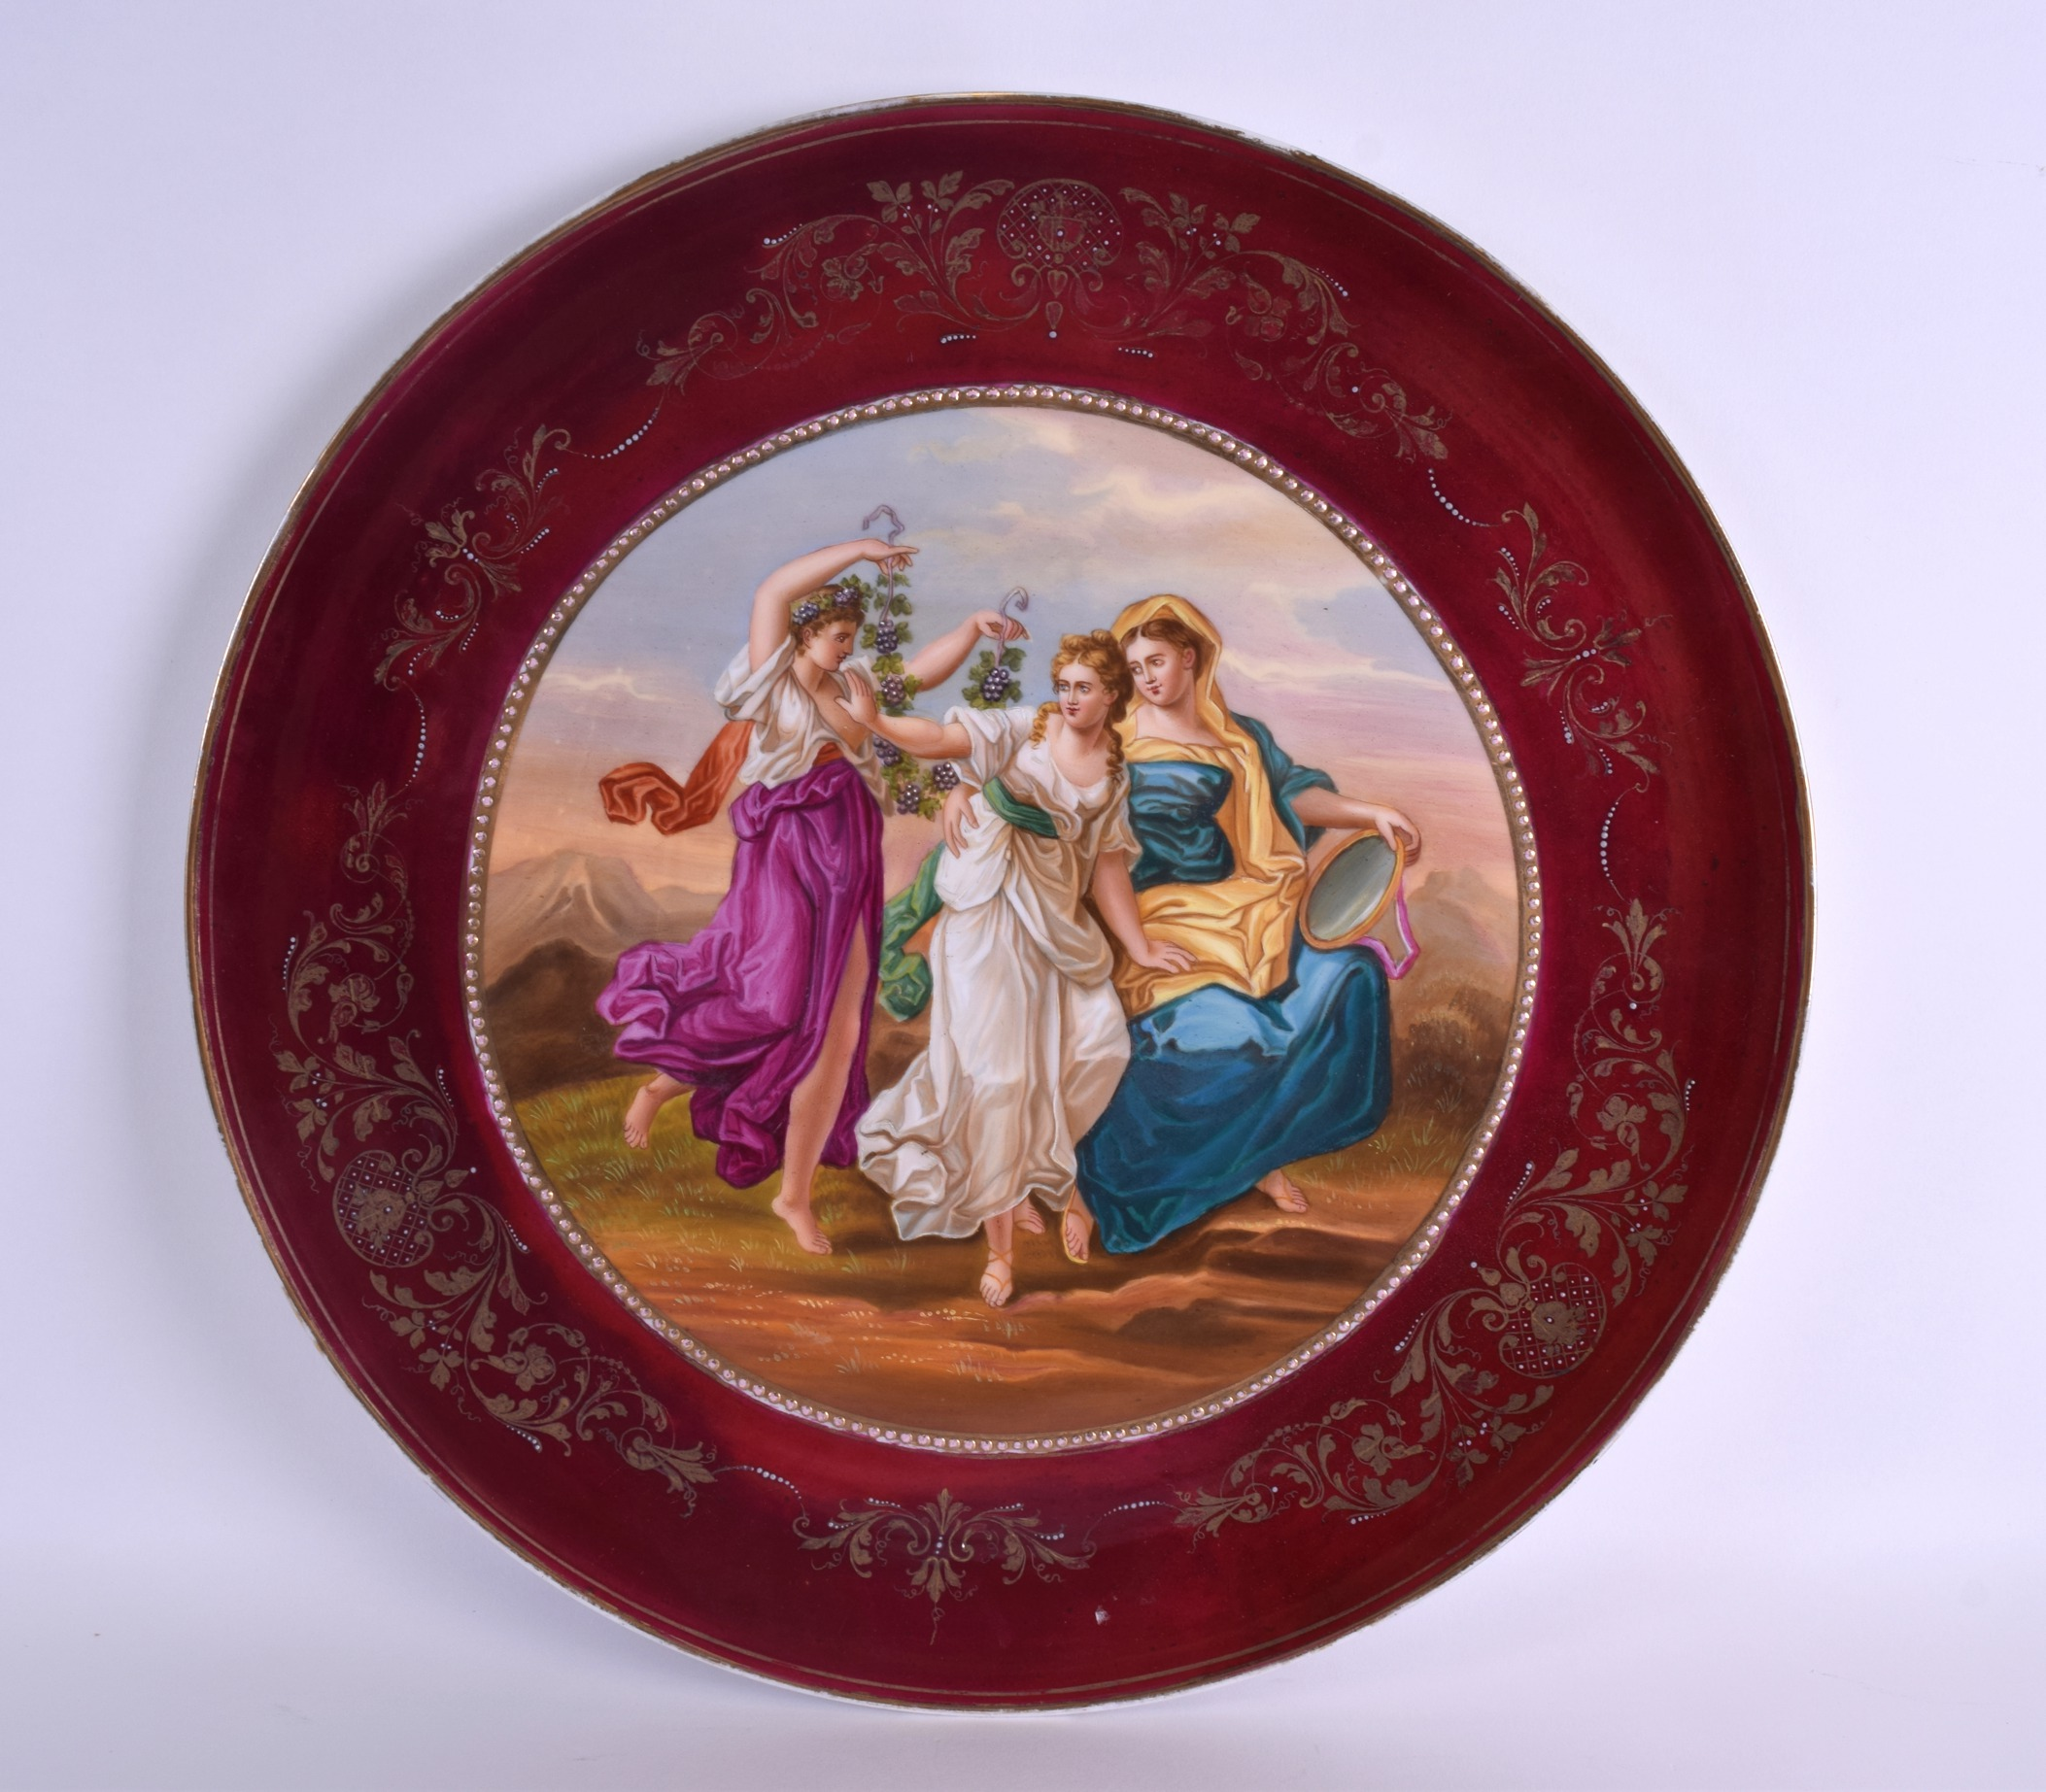 Lot 91 - A LARGE EARLY 20TH CENTURY VIENNA PORCELAIN CHARGER painted with three classical females within a